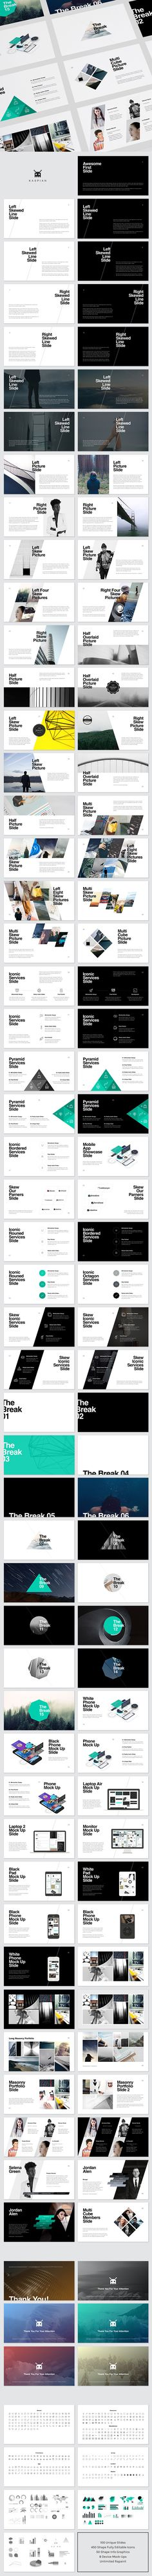 KASPIAN PowerPoint Presentation Template #slides #design Download…